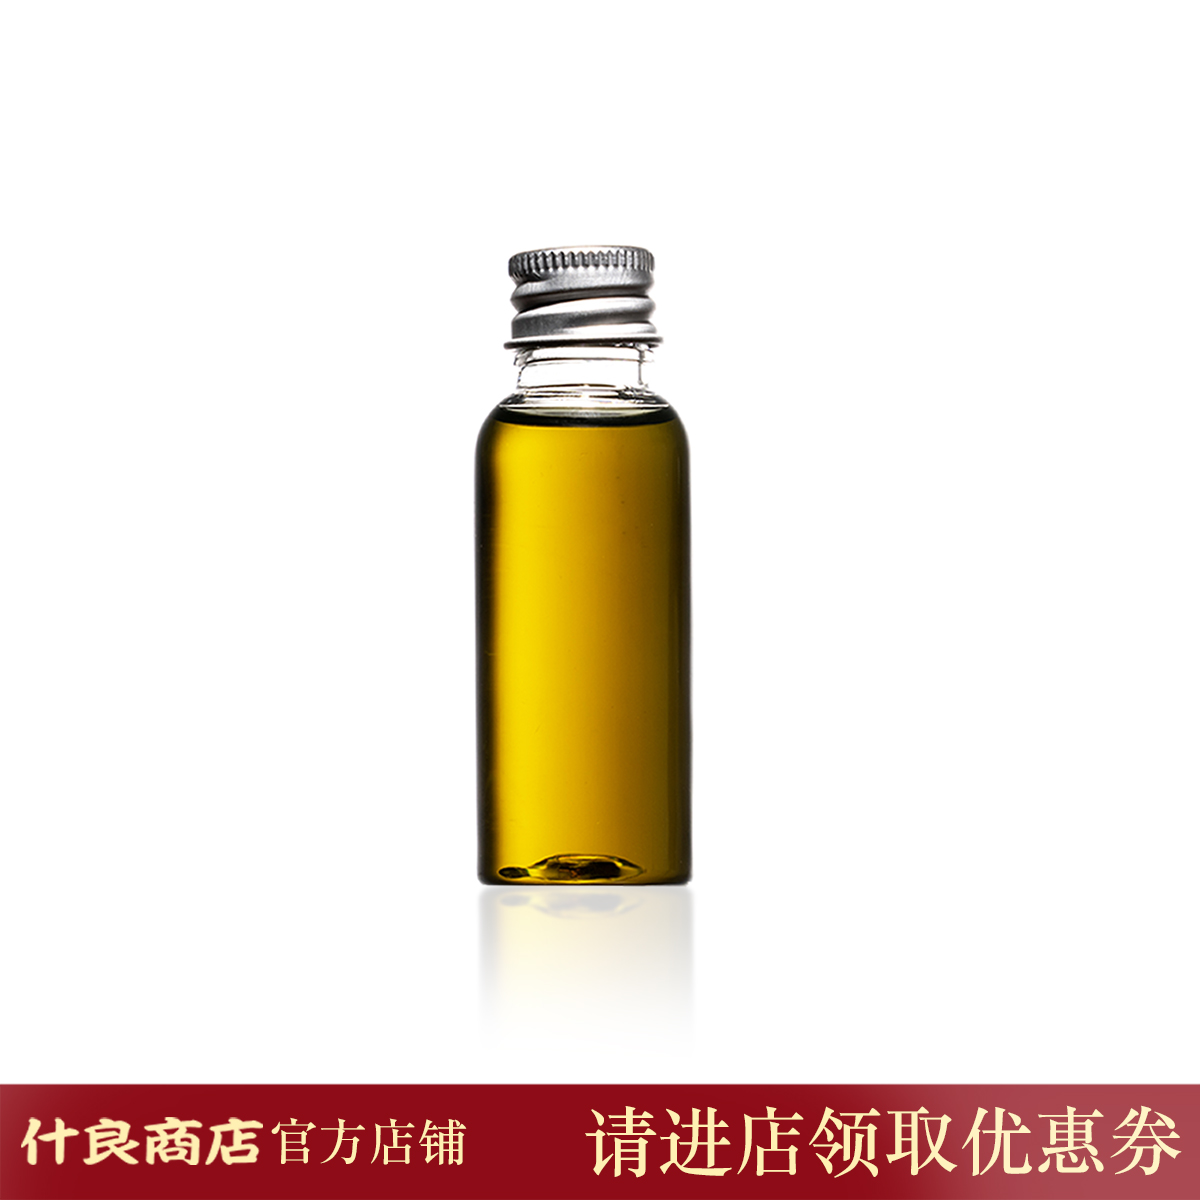 Shiliang store natural wood wax oil maintenance set solid wood furniture cleaning and maintenance package